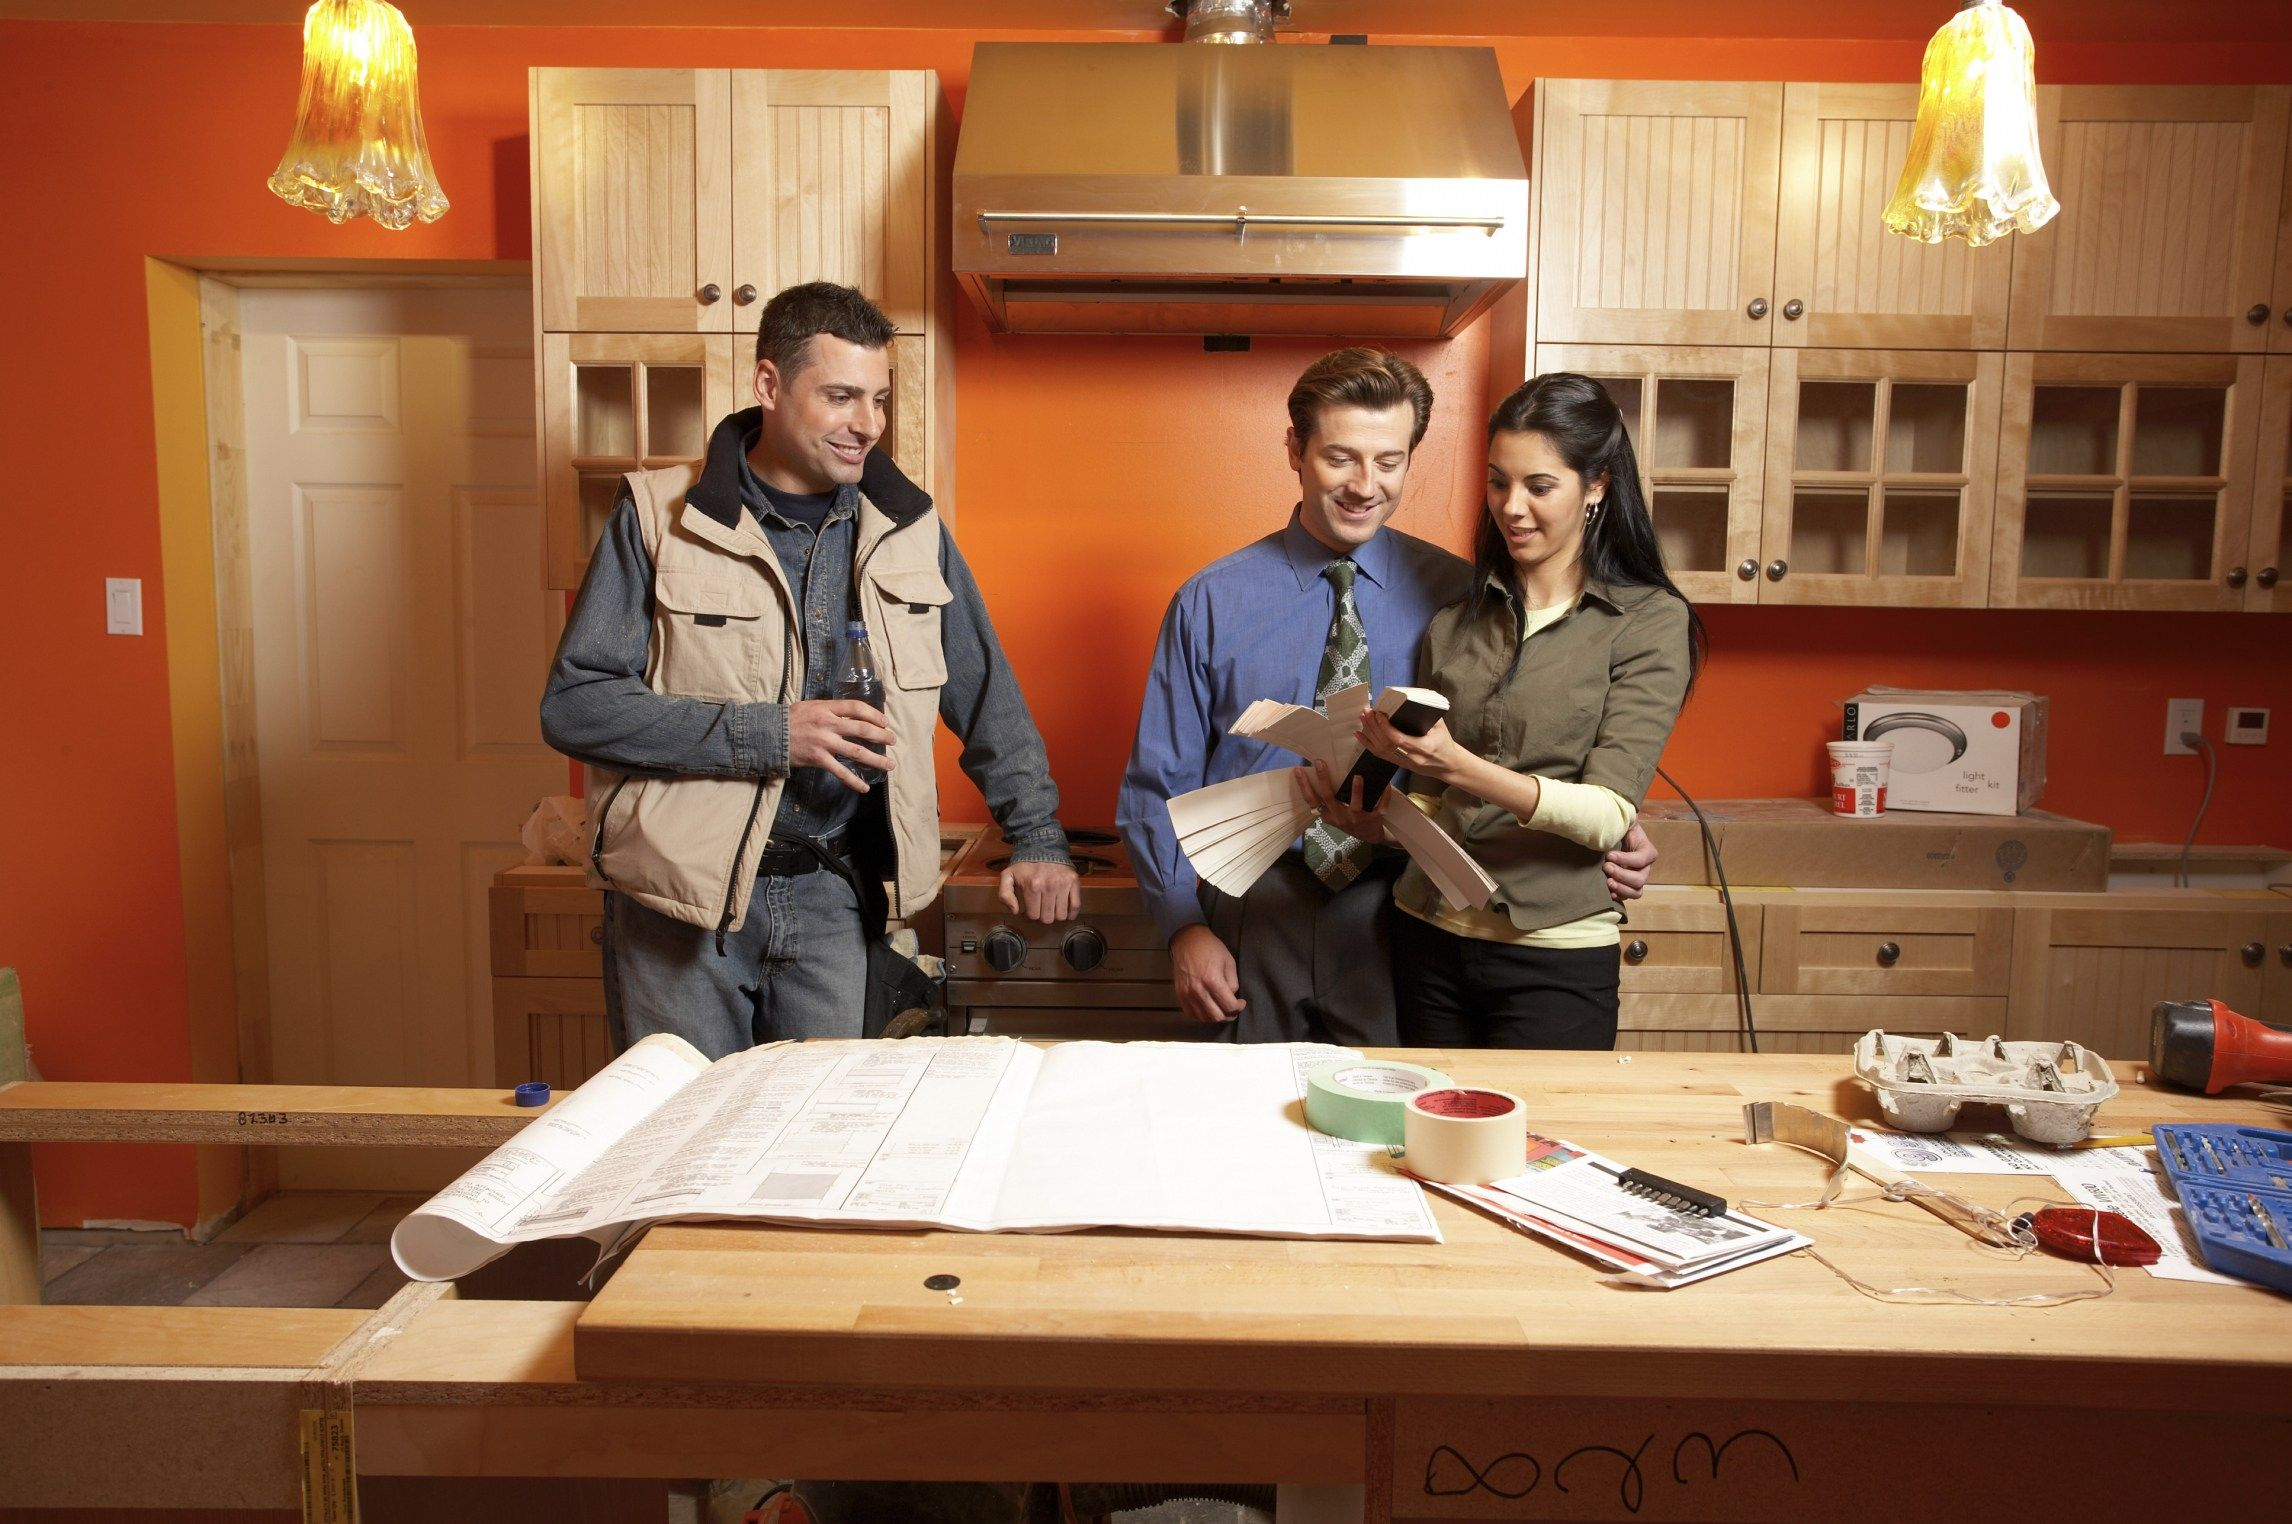 A House Doctor | REMODEL CONTRACTORS | Kitchen remodel cost